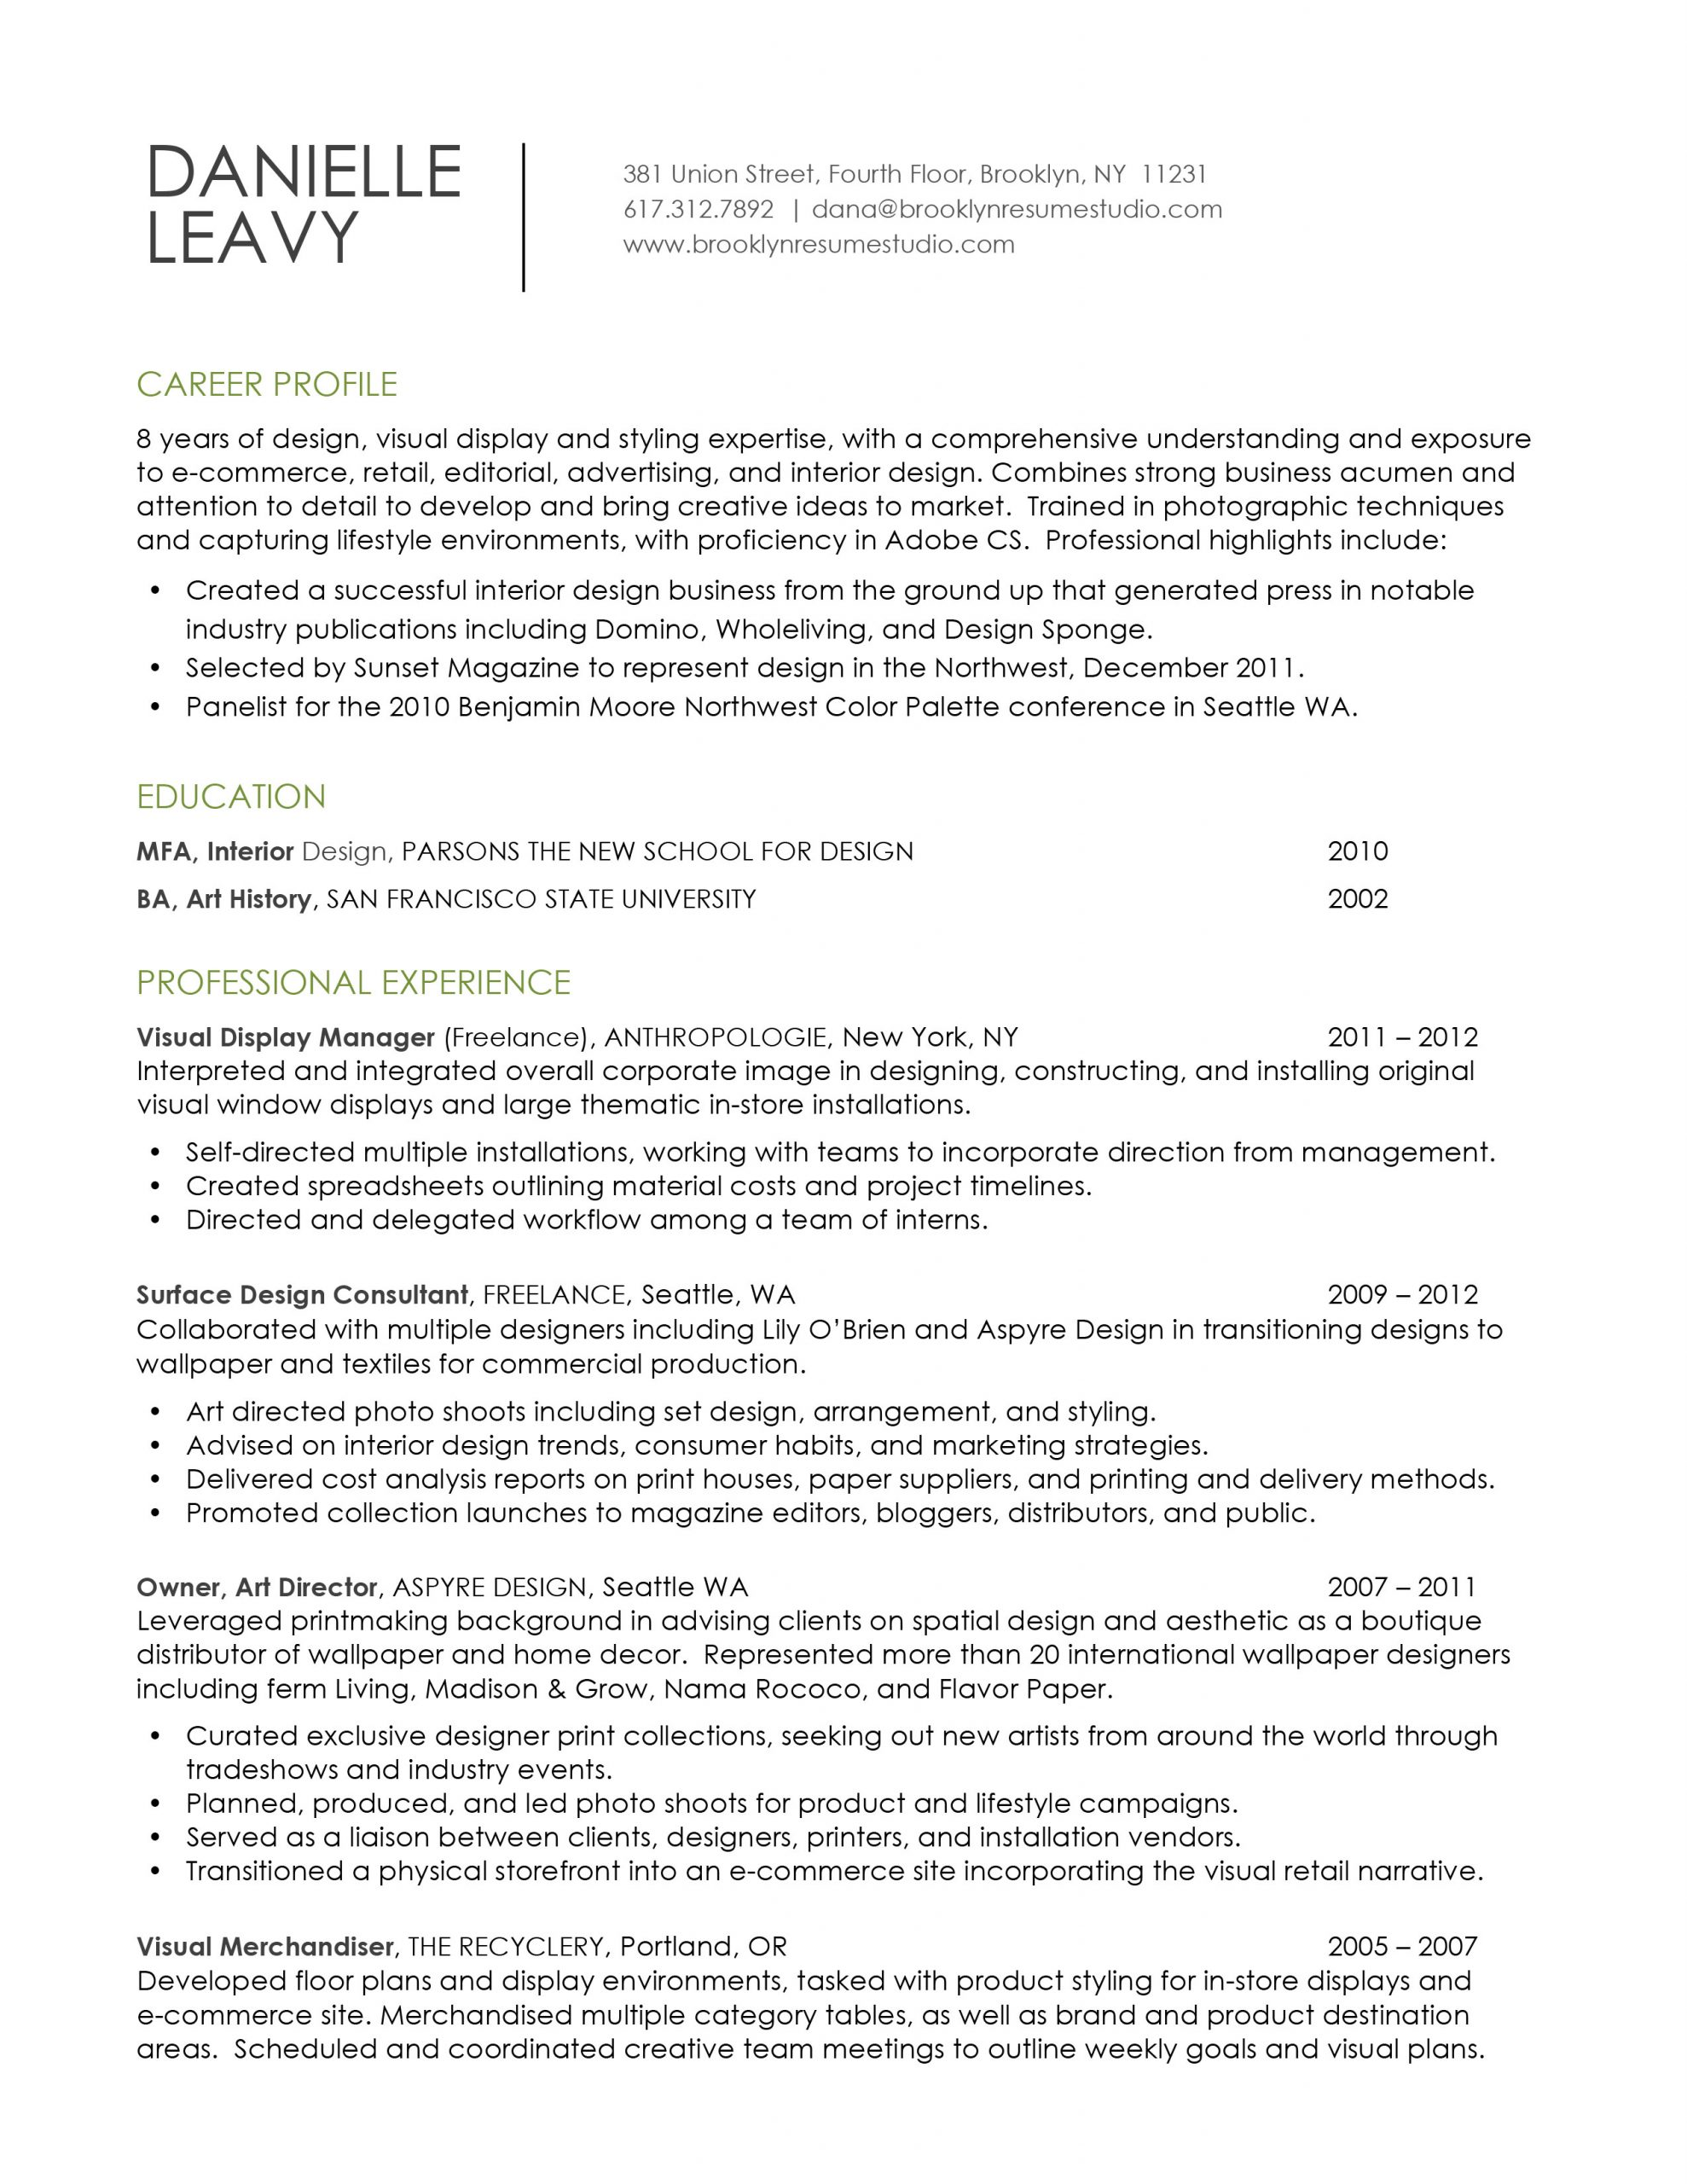 resume examples cover letter samples and linkedin profile dispensary manager scaled Resume Dispensary Manager Resume